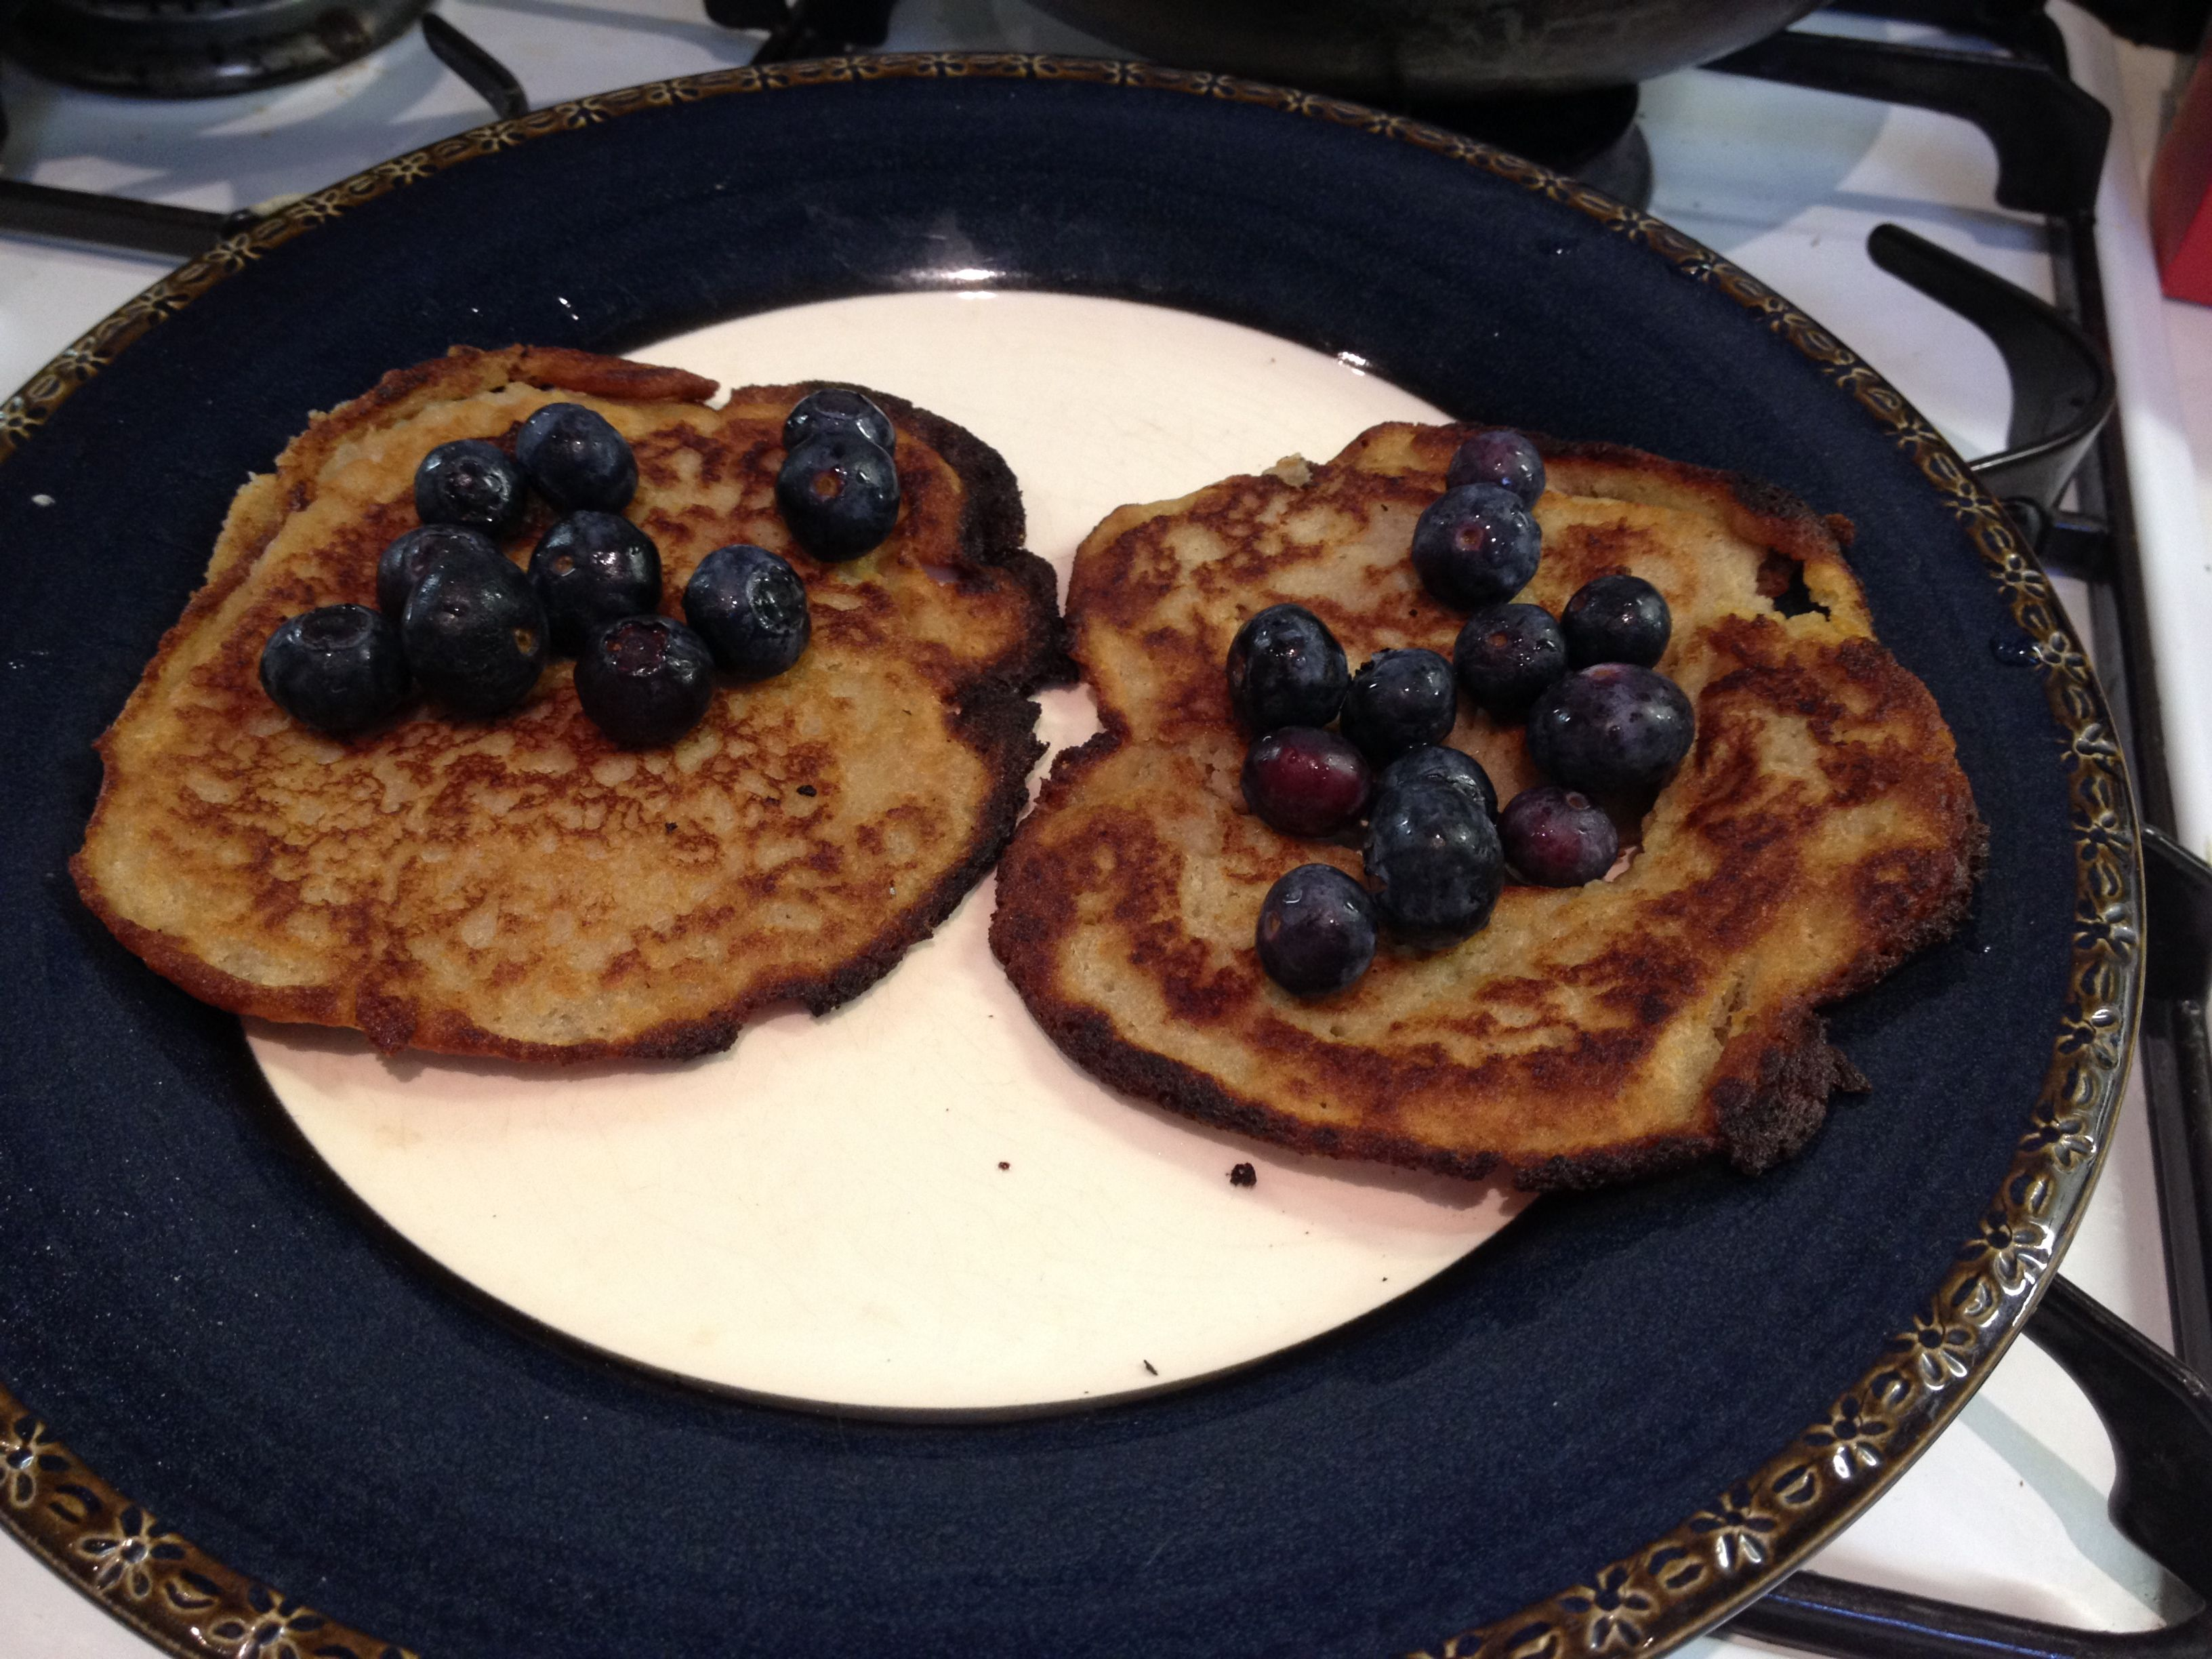 Buckwheat and apple pancakes with cinnamon and blueberries.